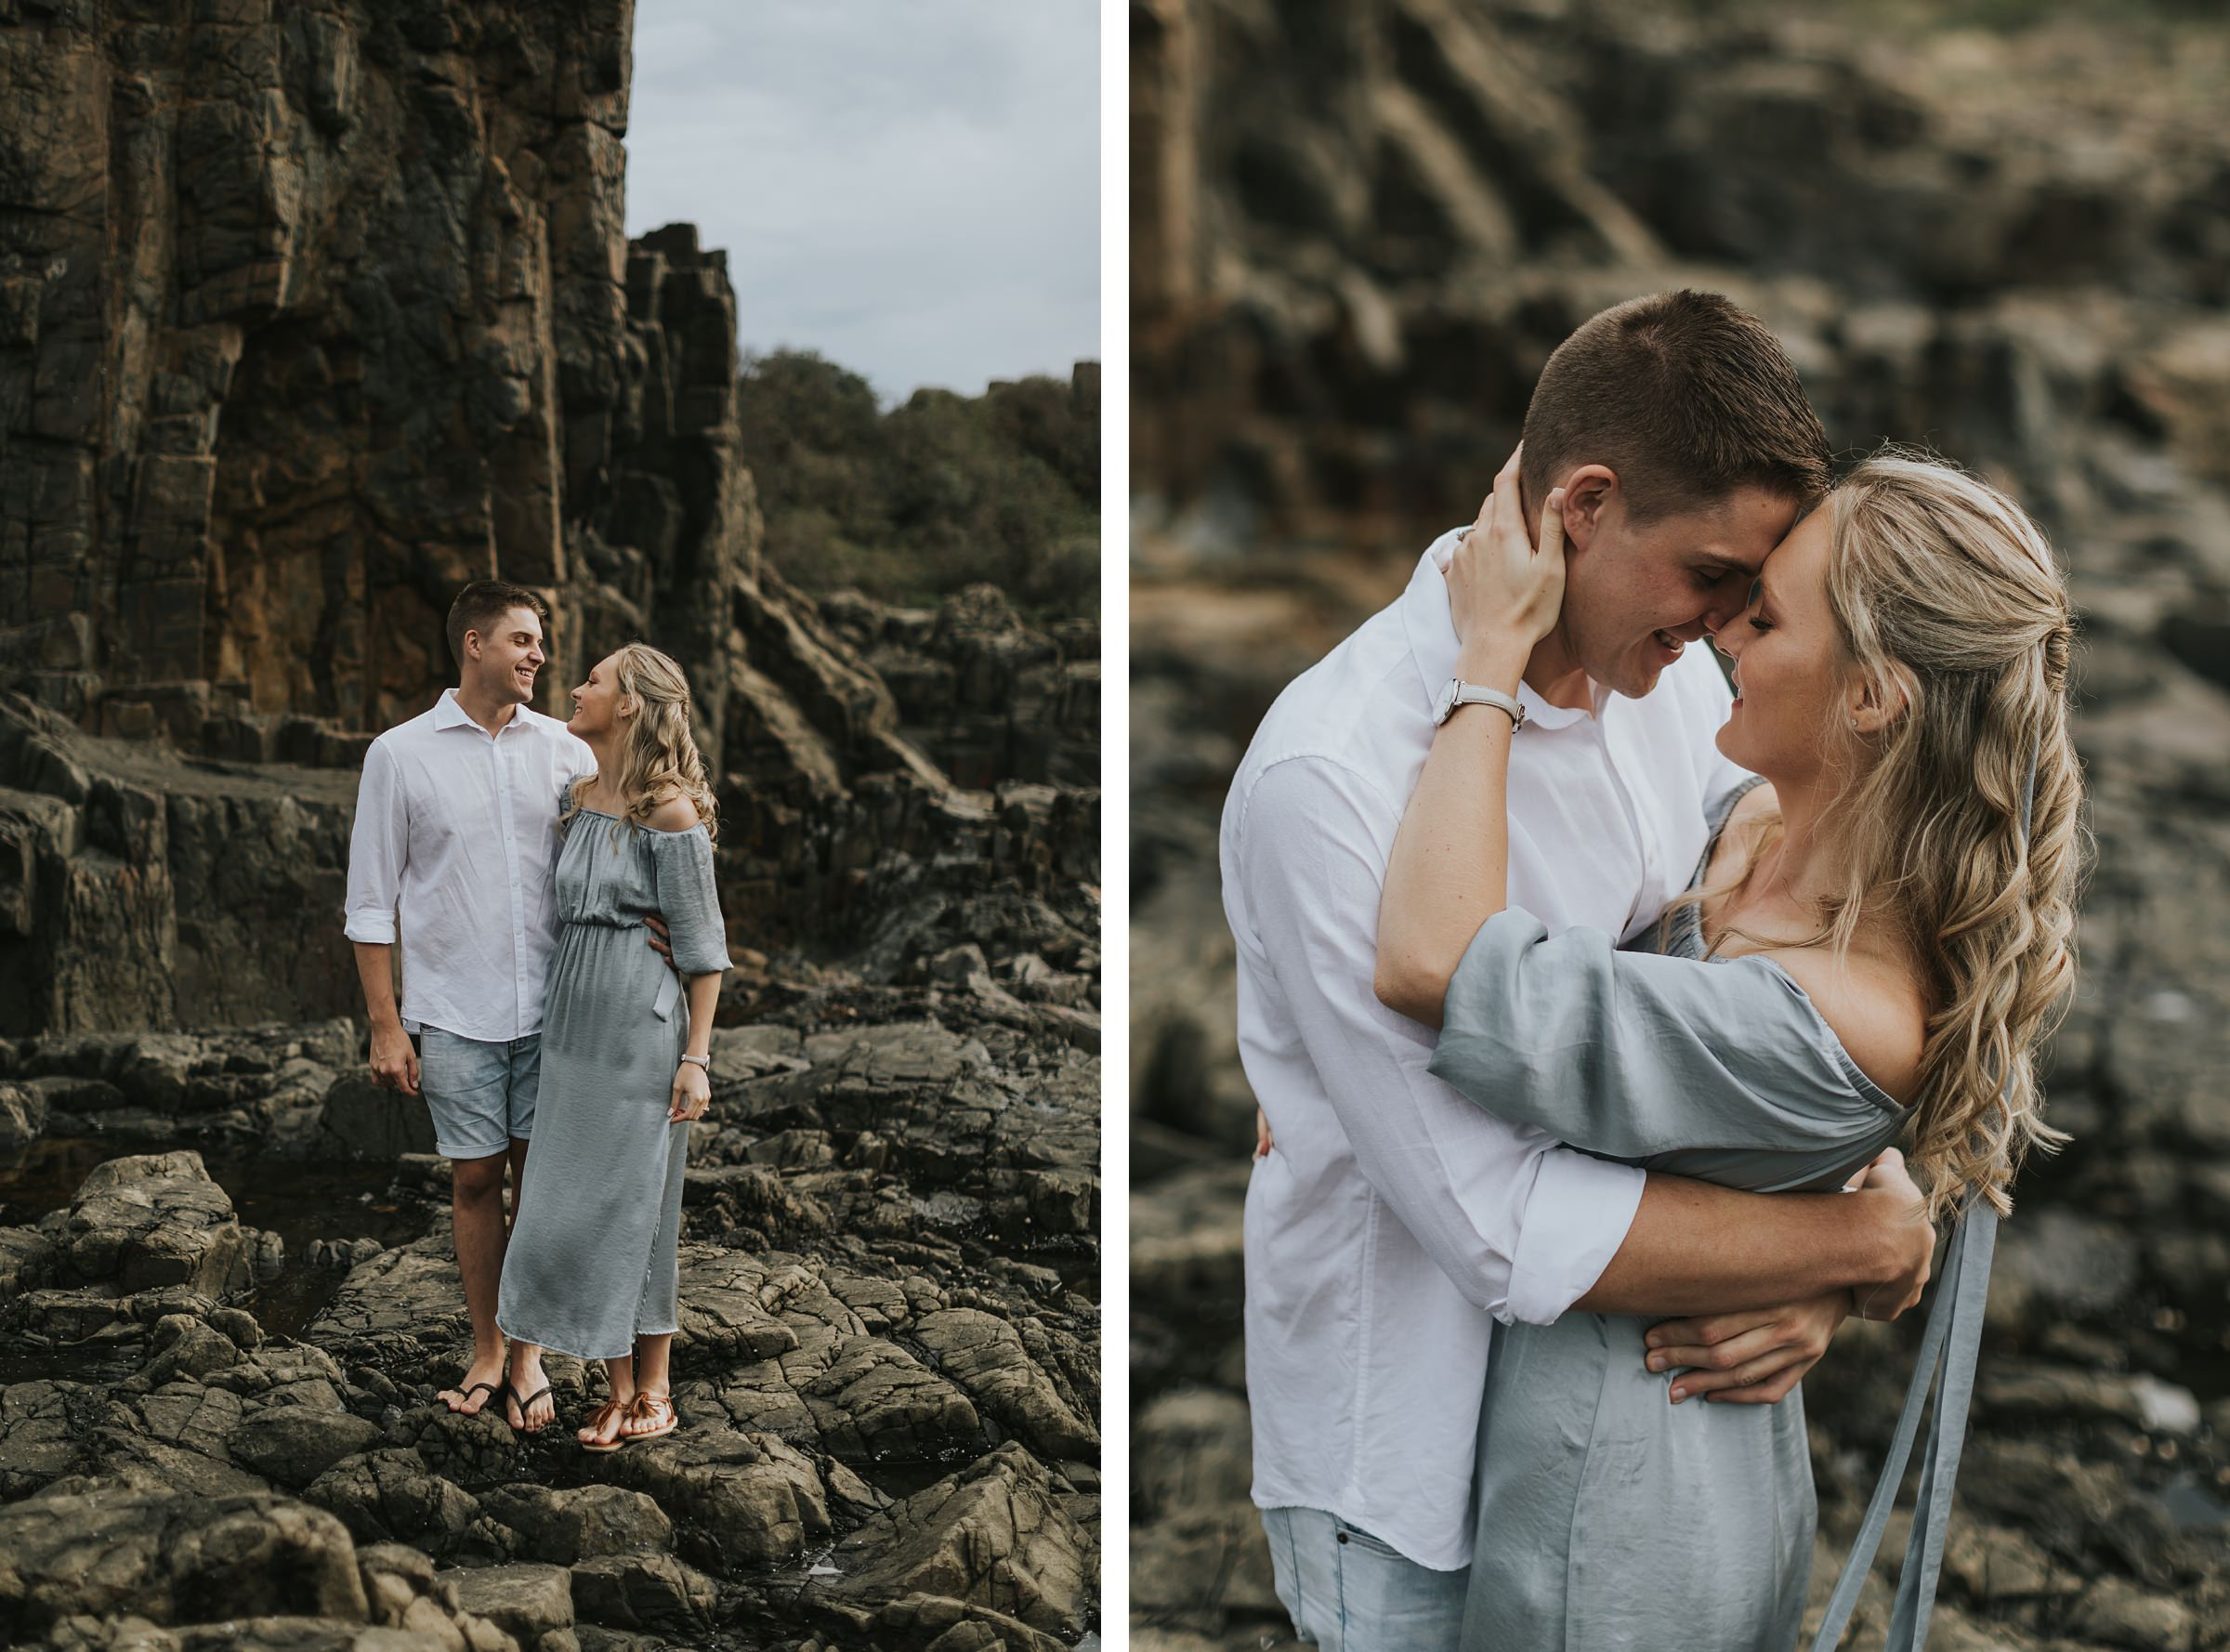 wedding photos at bombo quarry nsw south coast